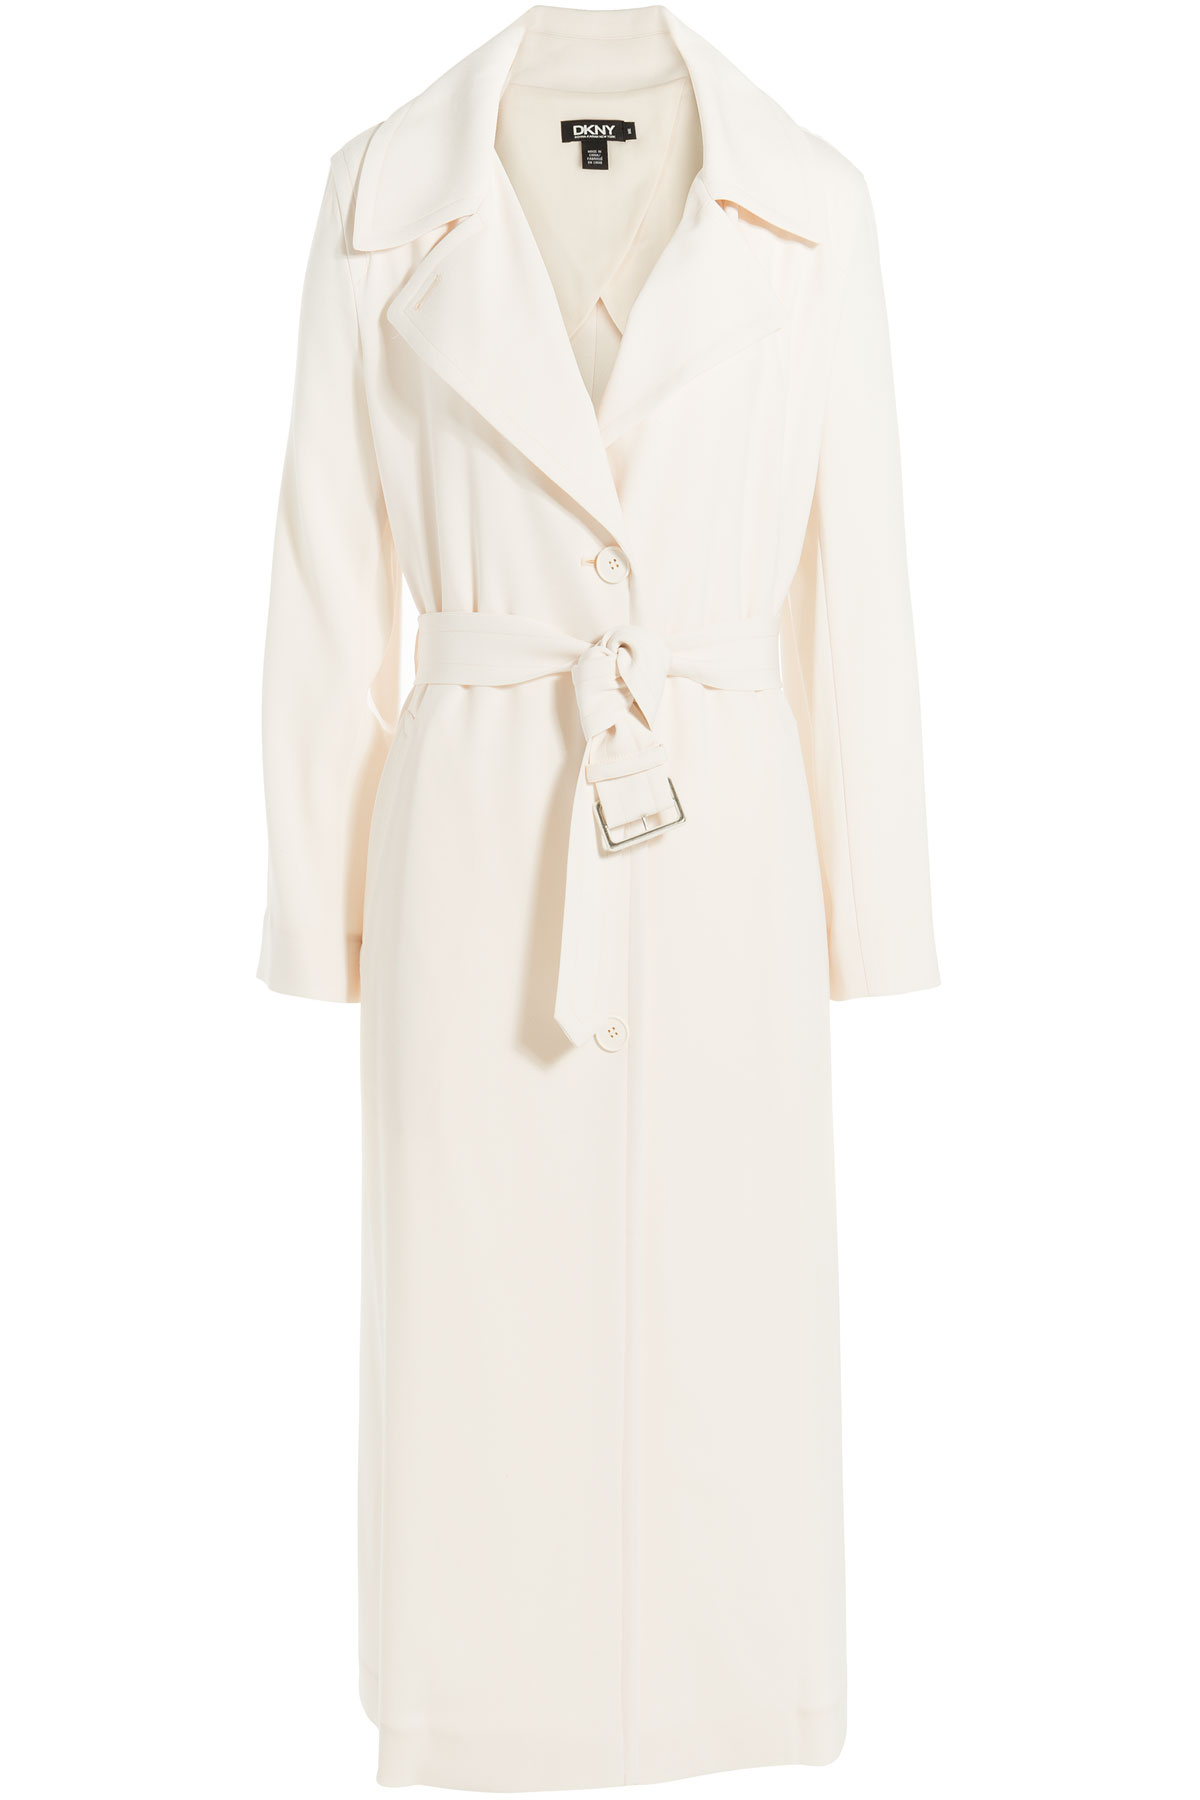 Images of White Trench Coat - Reikian